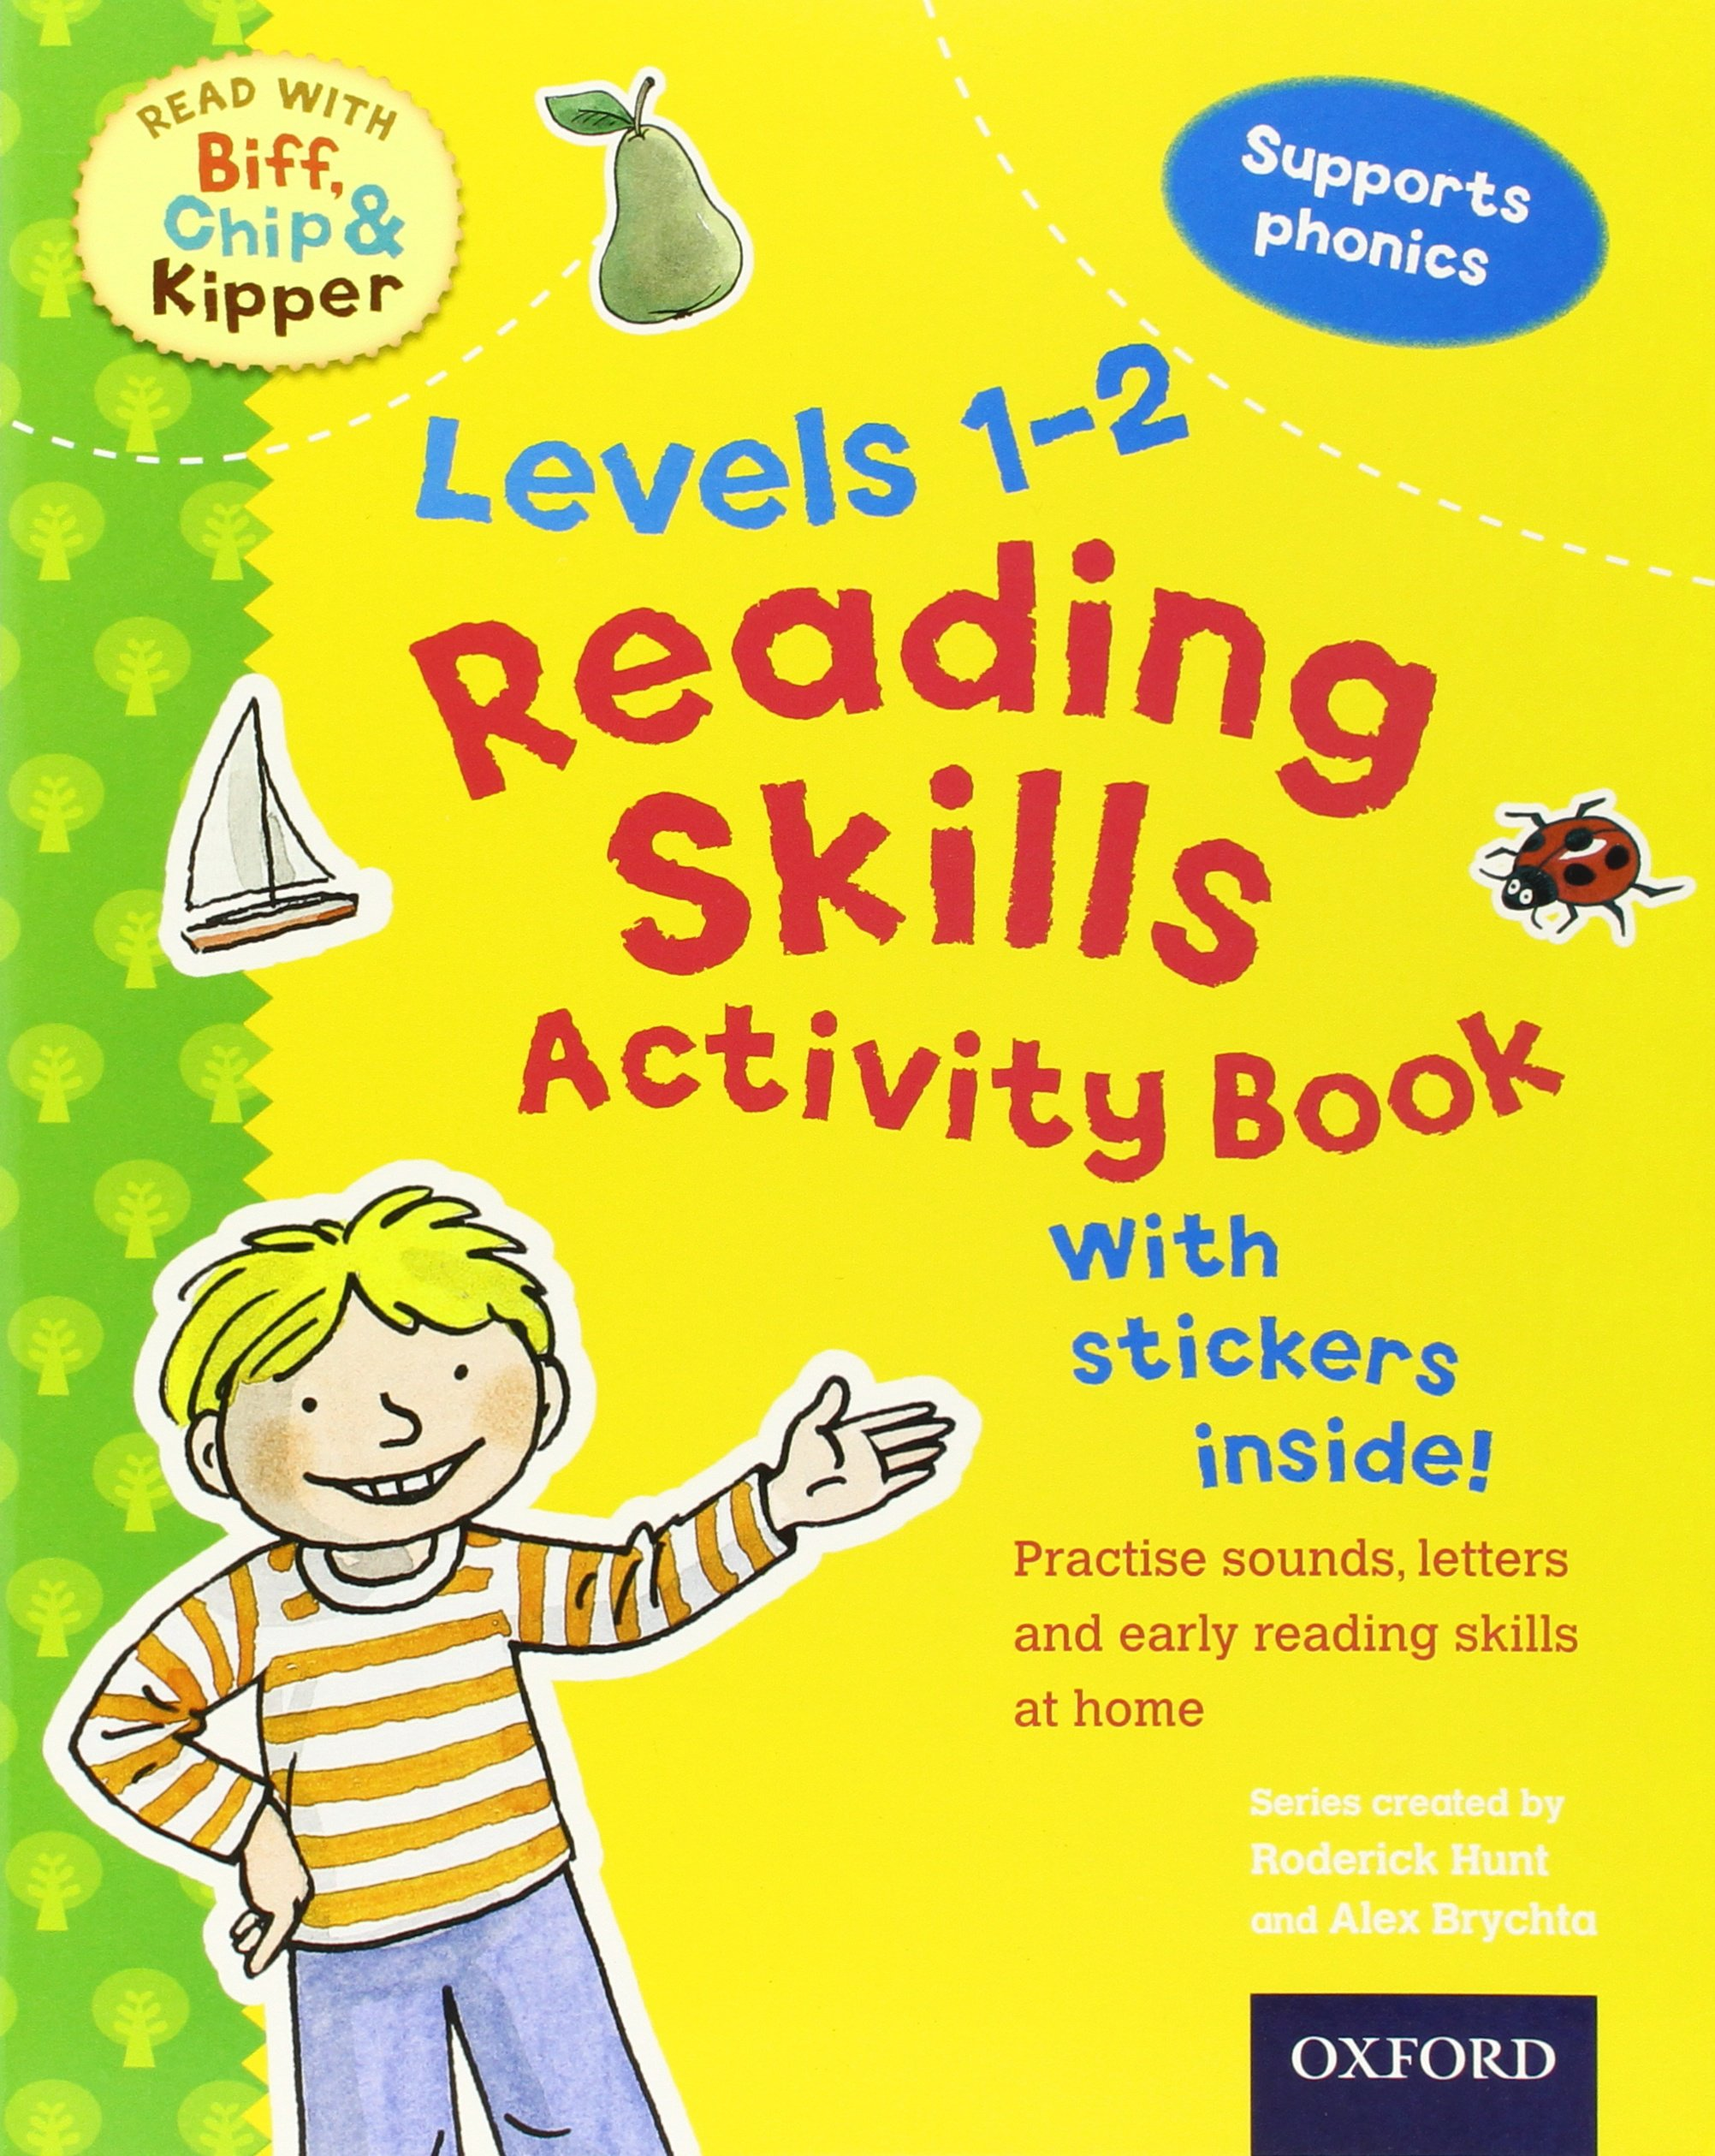 Oxford Reading Tree Levels Chart Oxford Reading Tree Read With